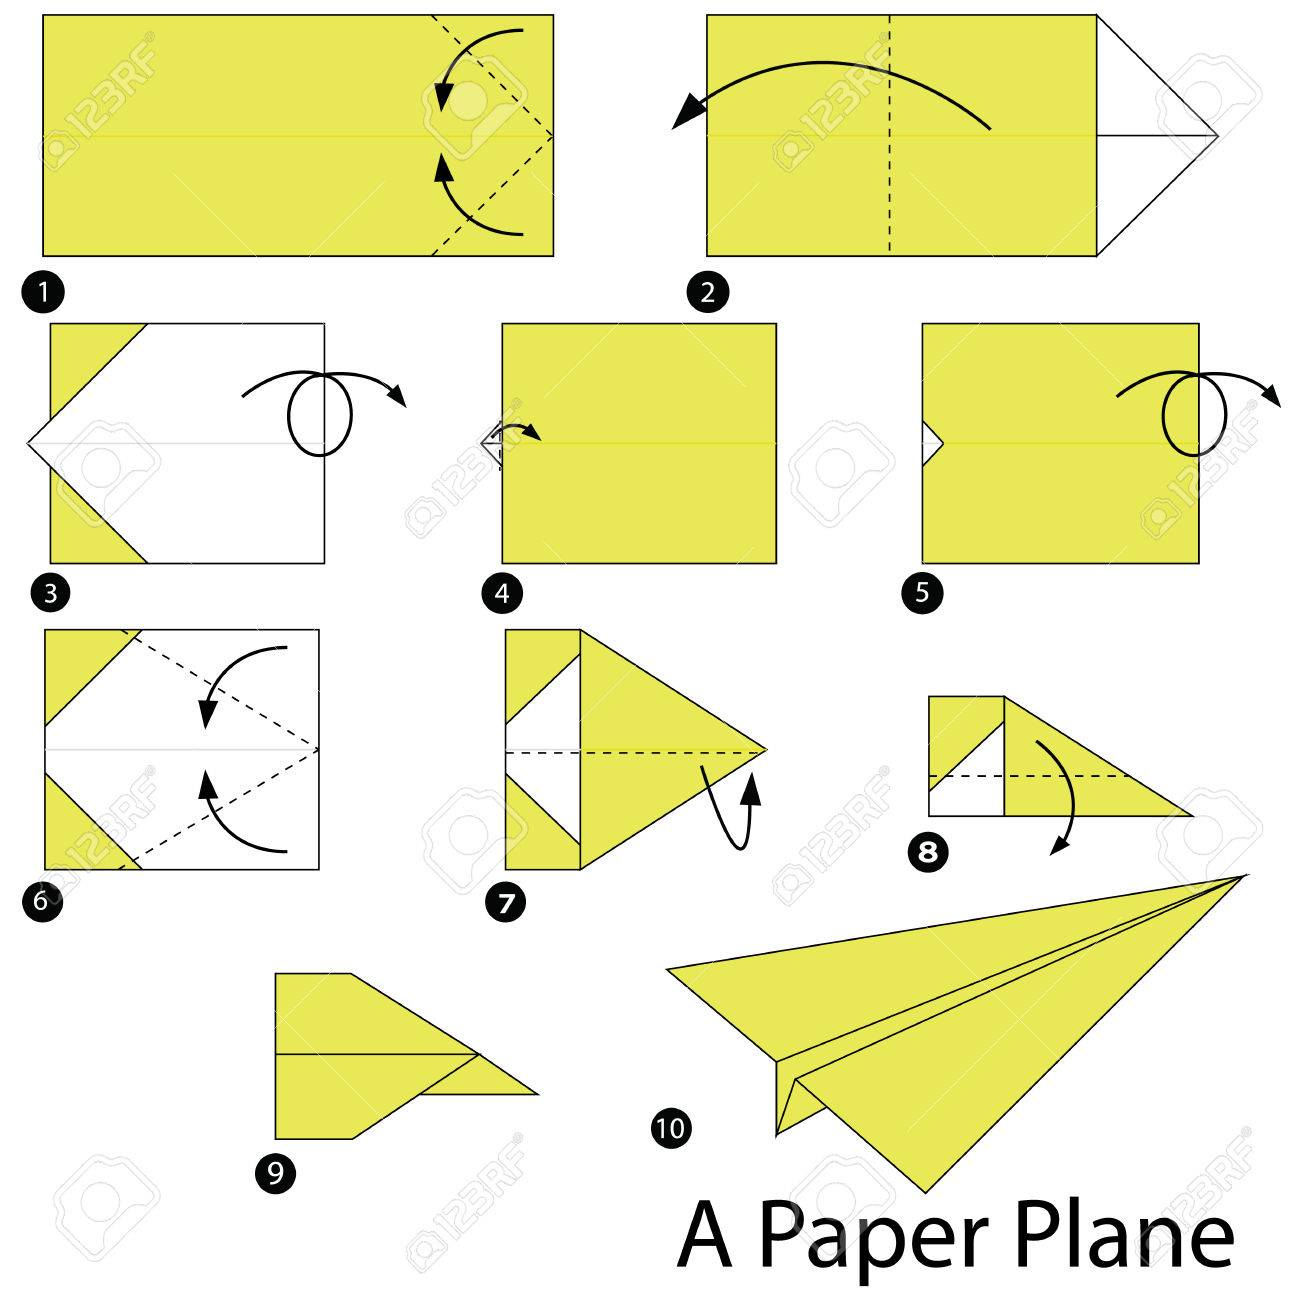 How to make origami paper planes step by